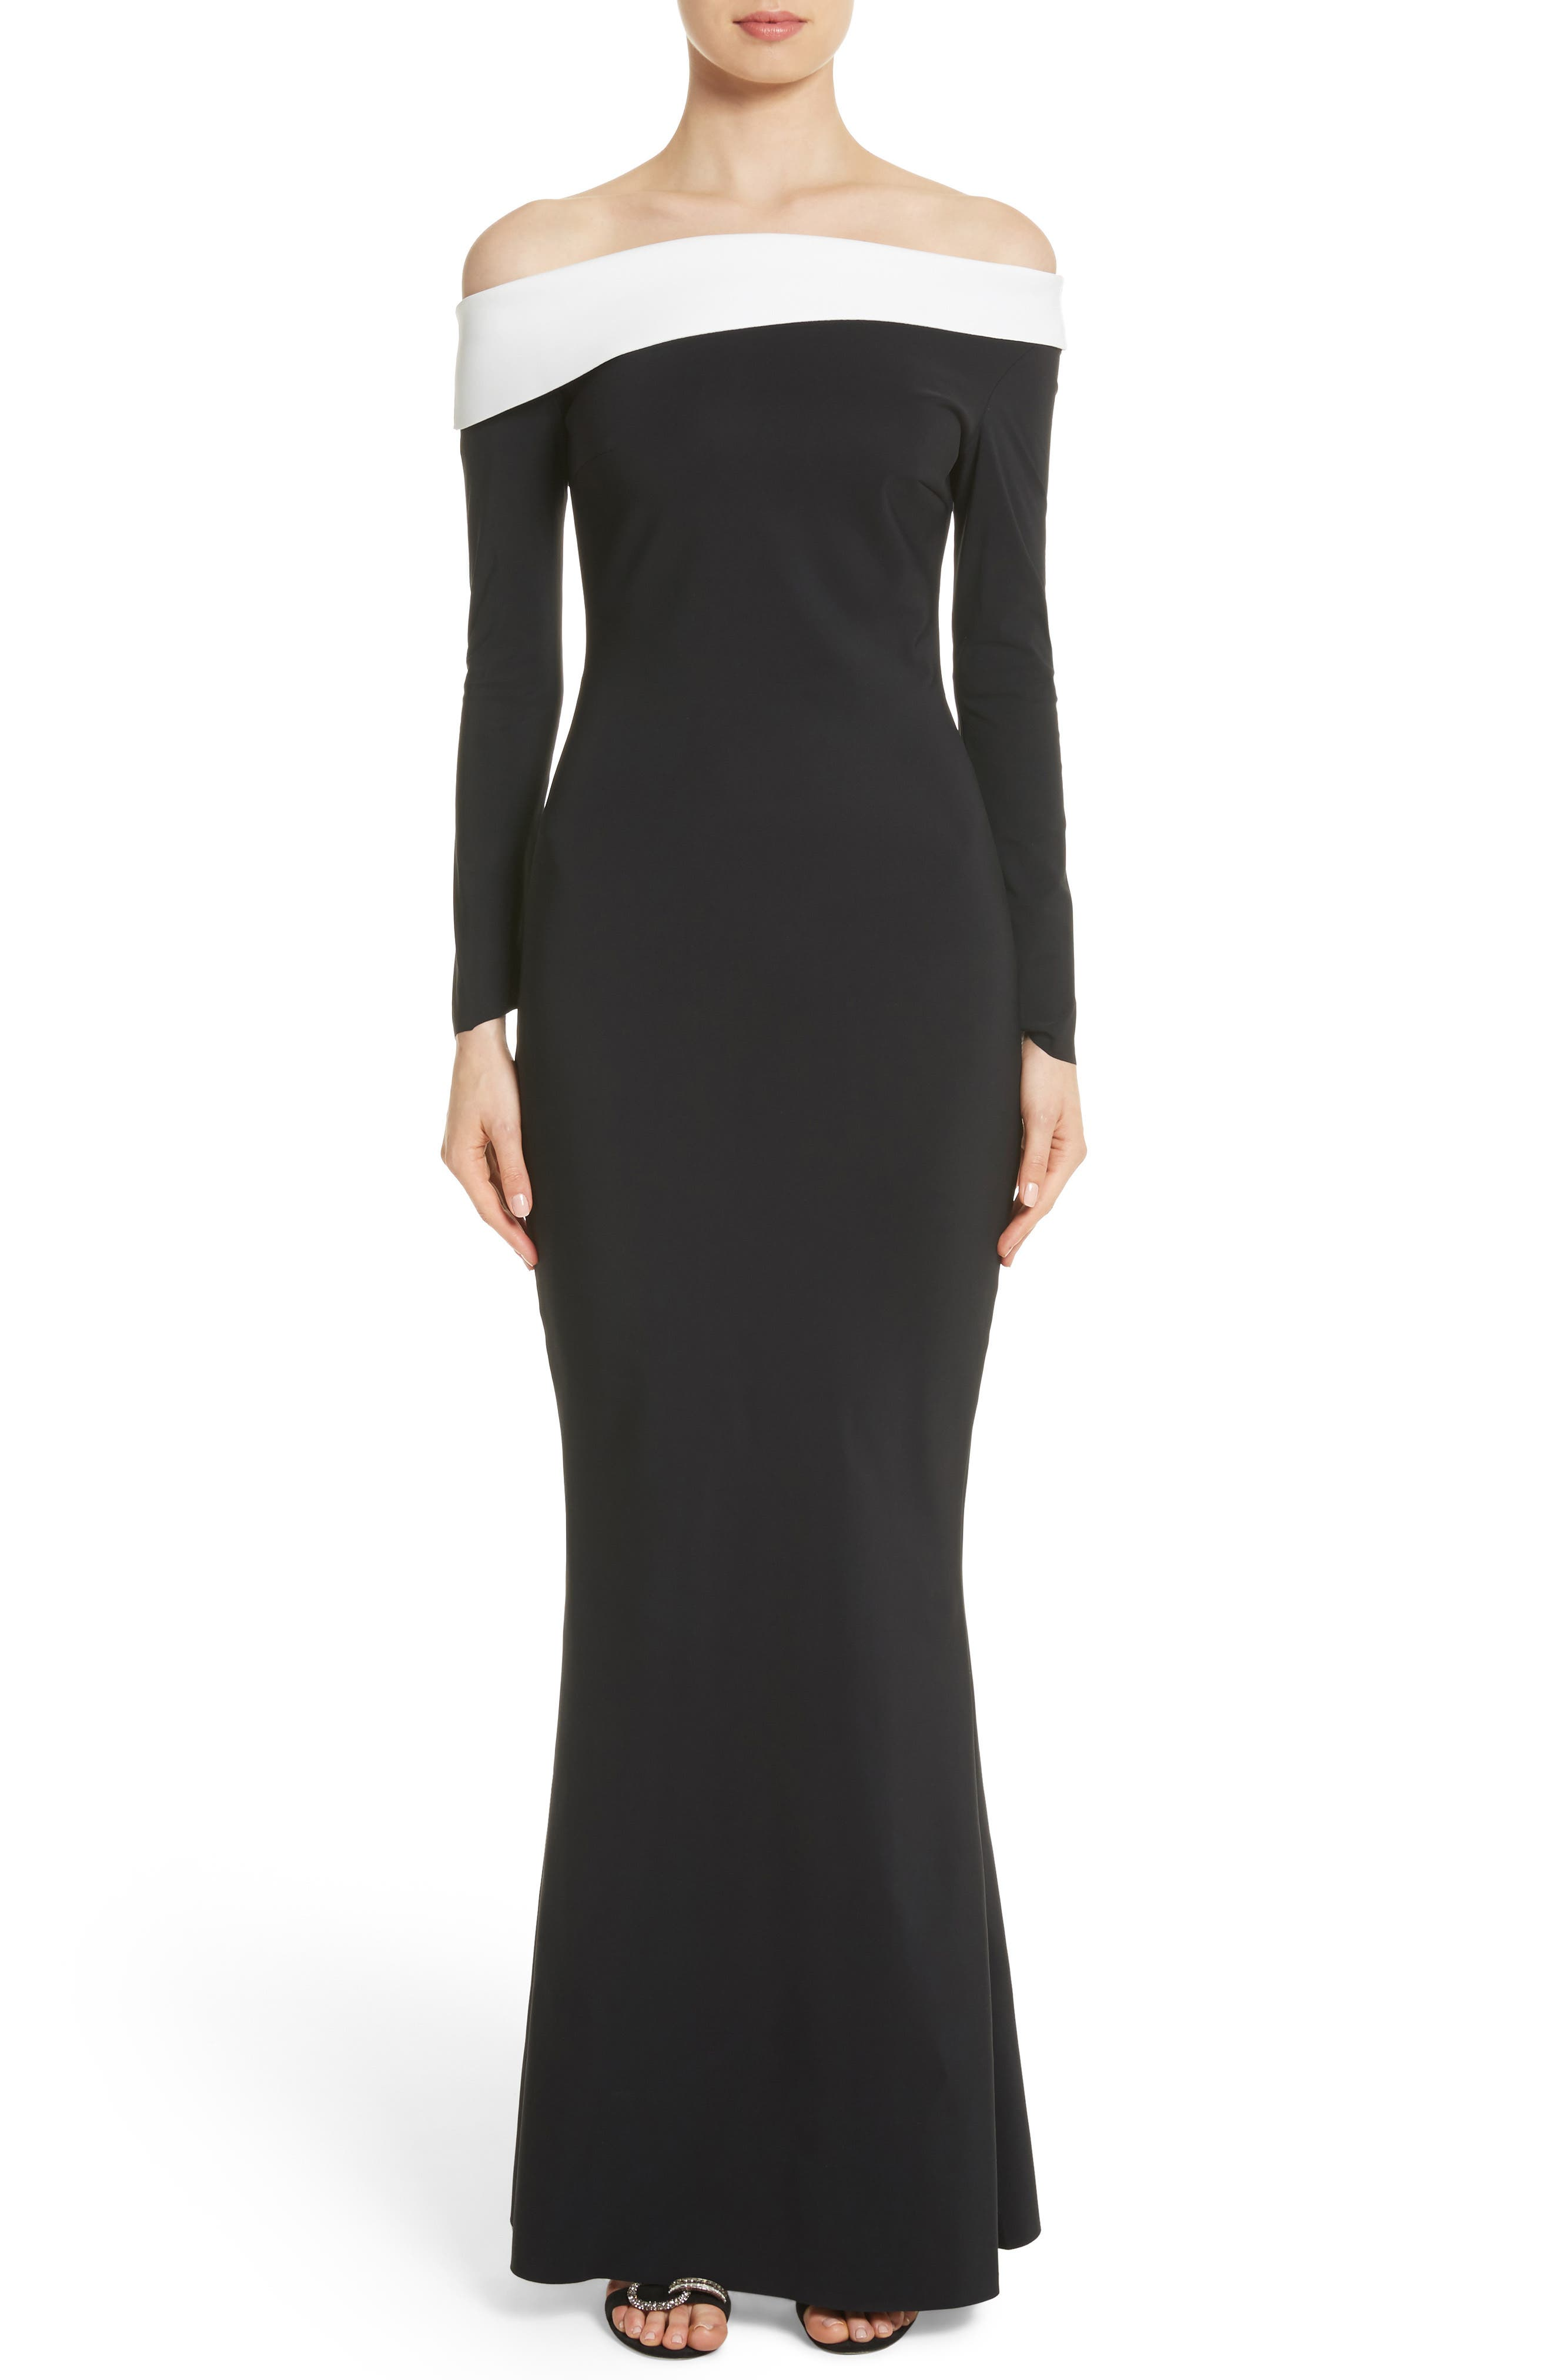 Tae Bicolor Off the Shoulder Gown,                         Main,                         color, Black/ White